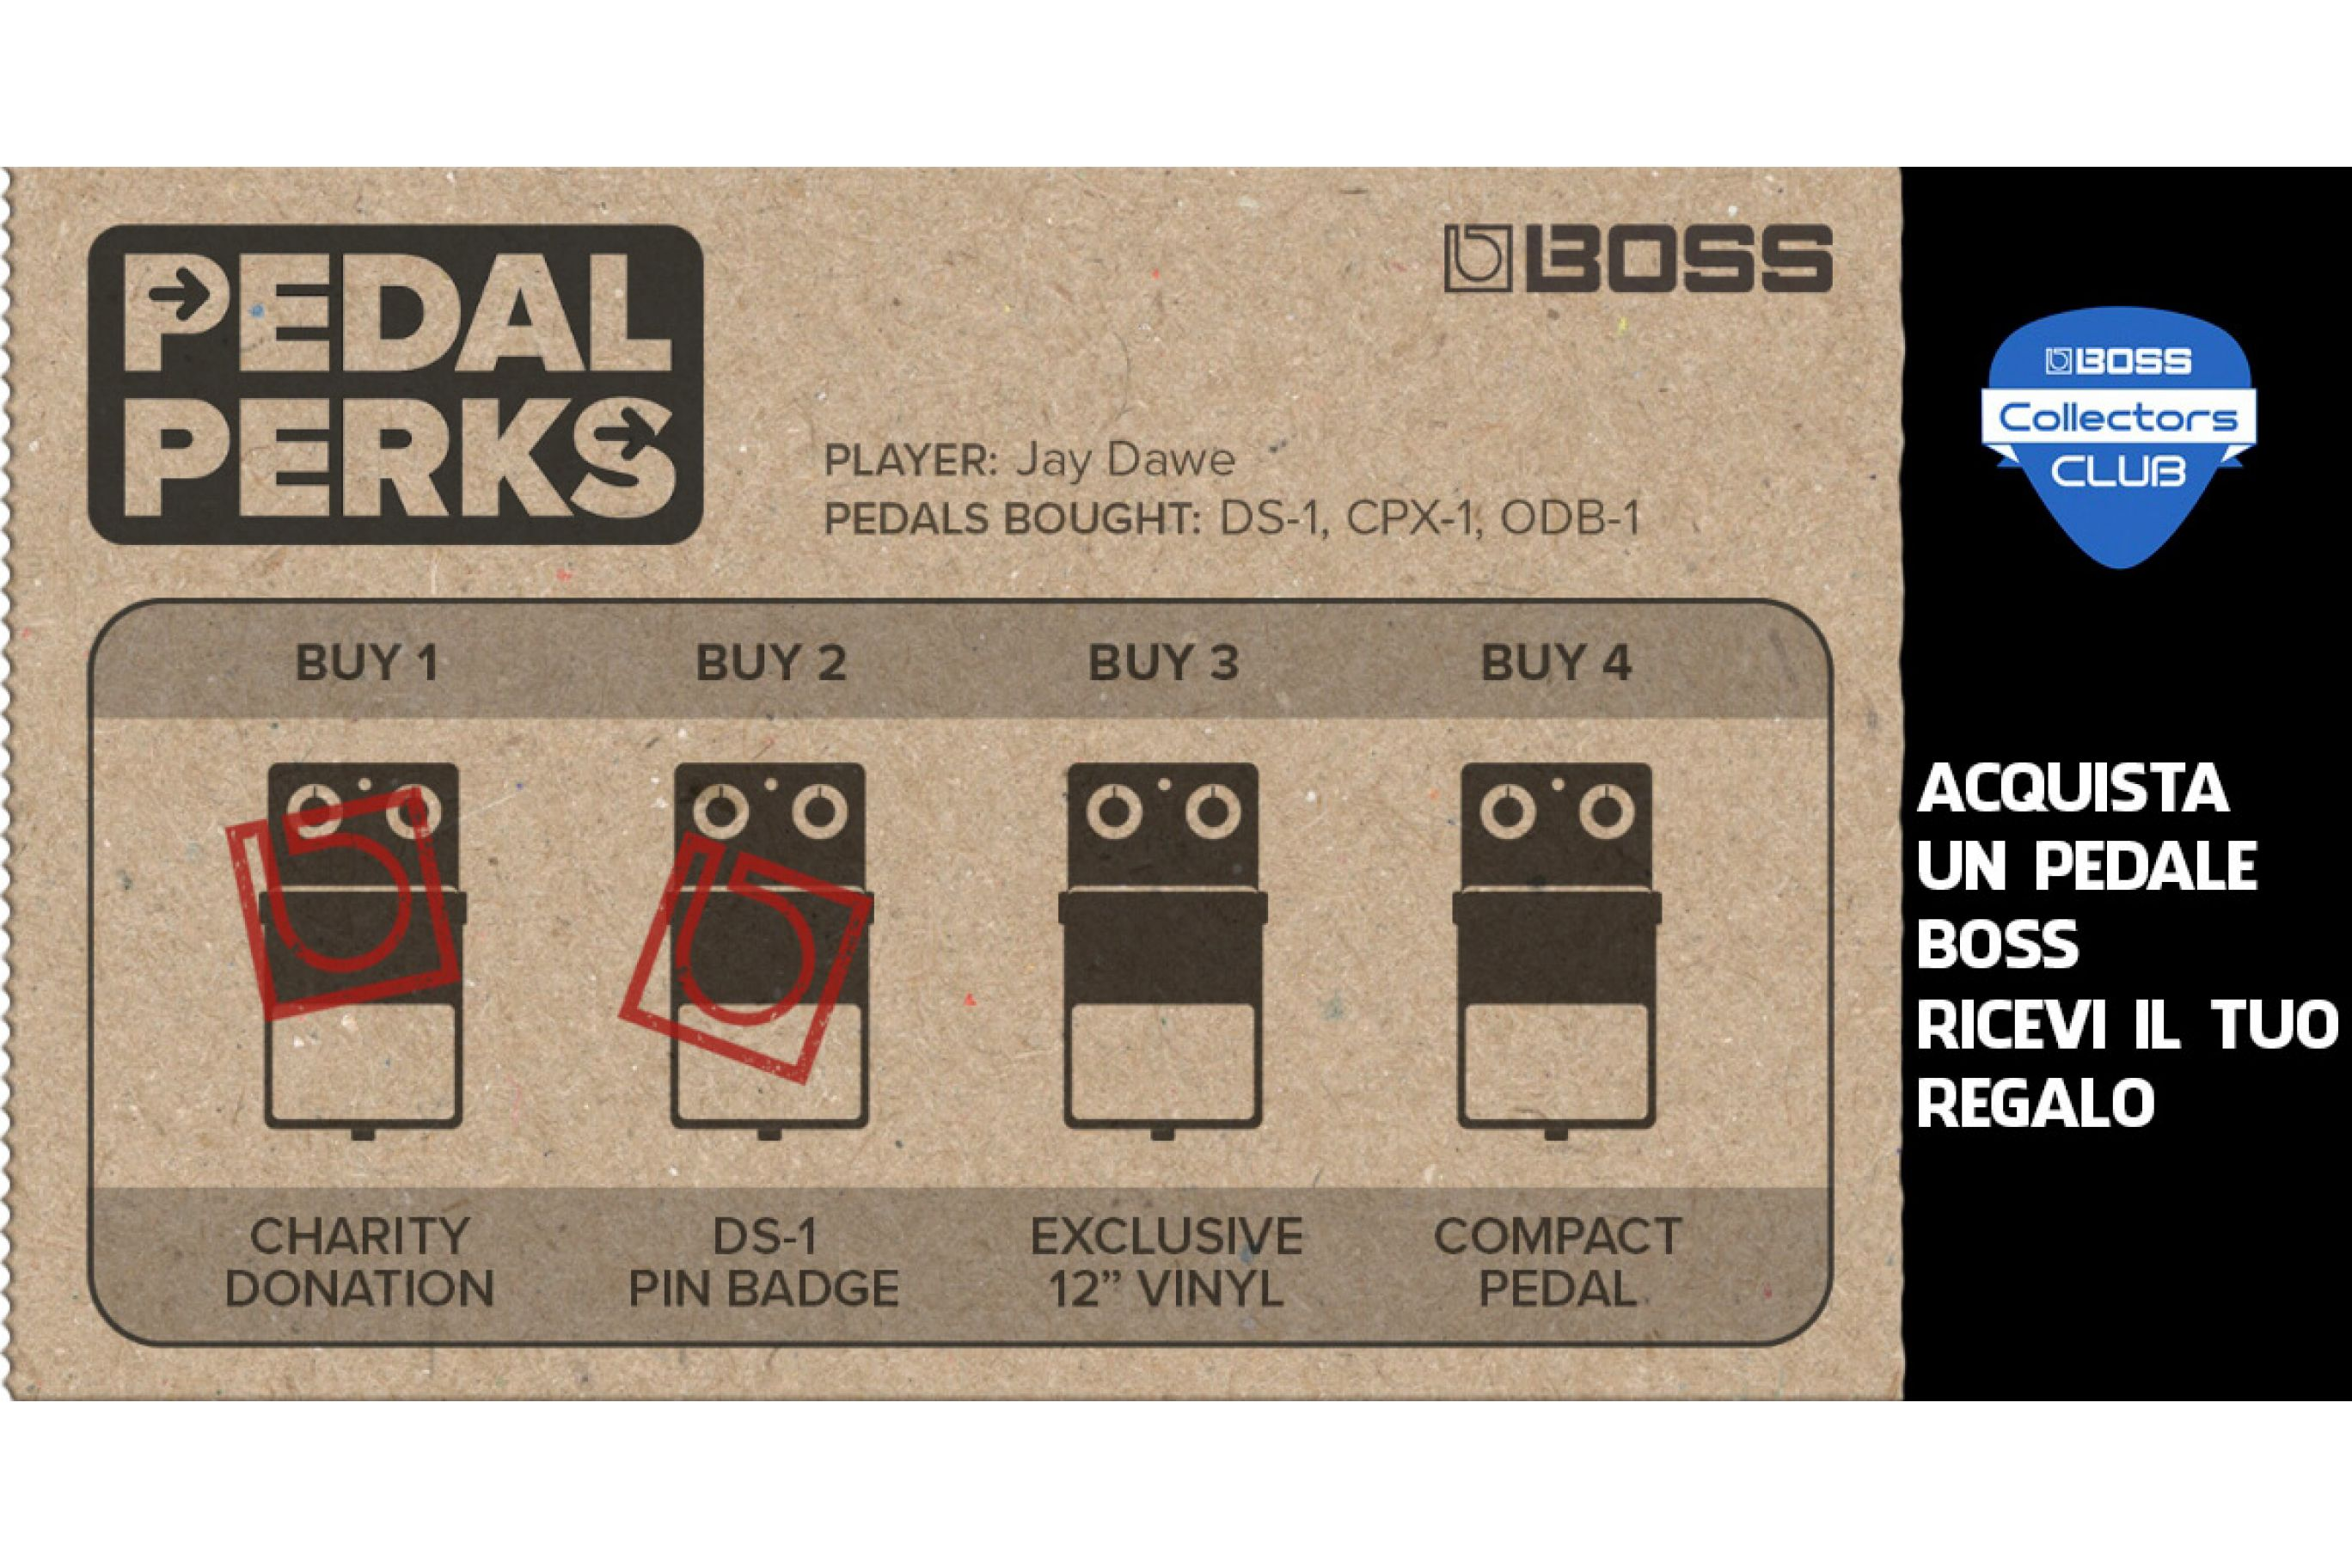 Boss Collectors Club - Pedal Perks